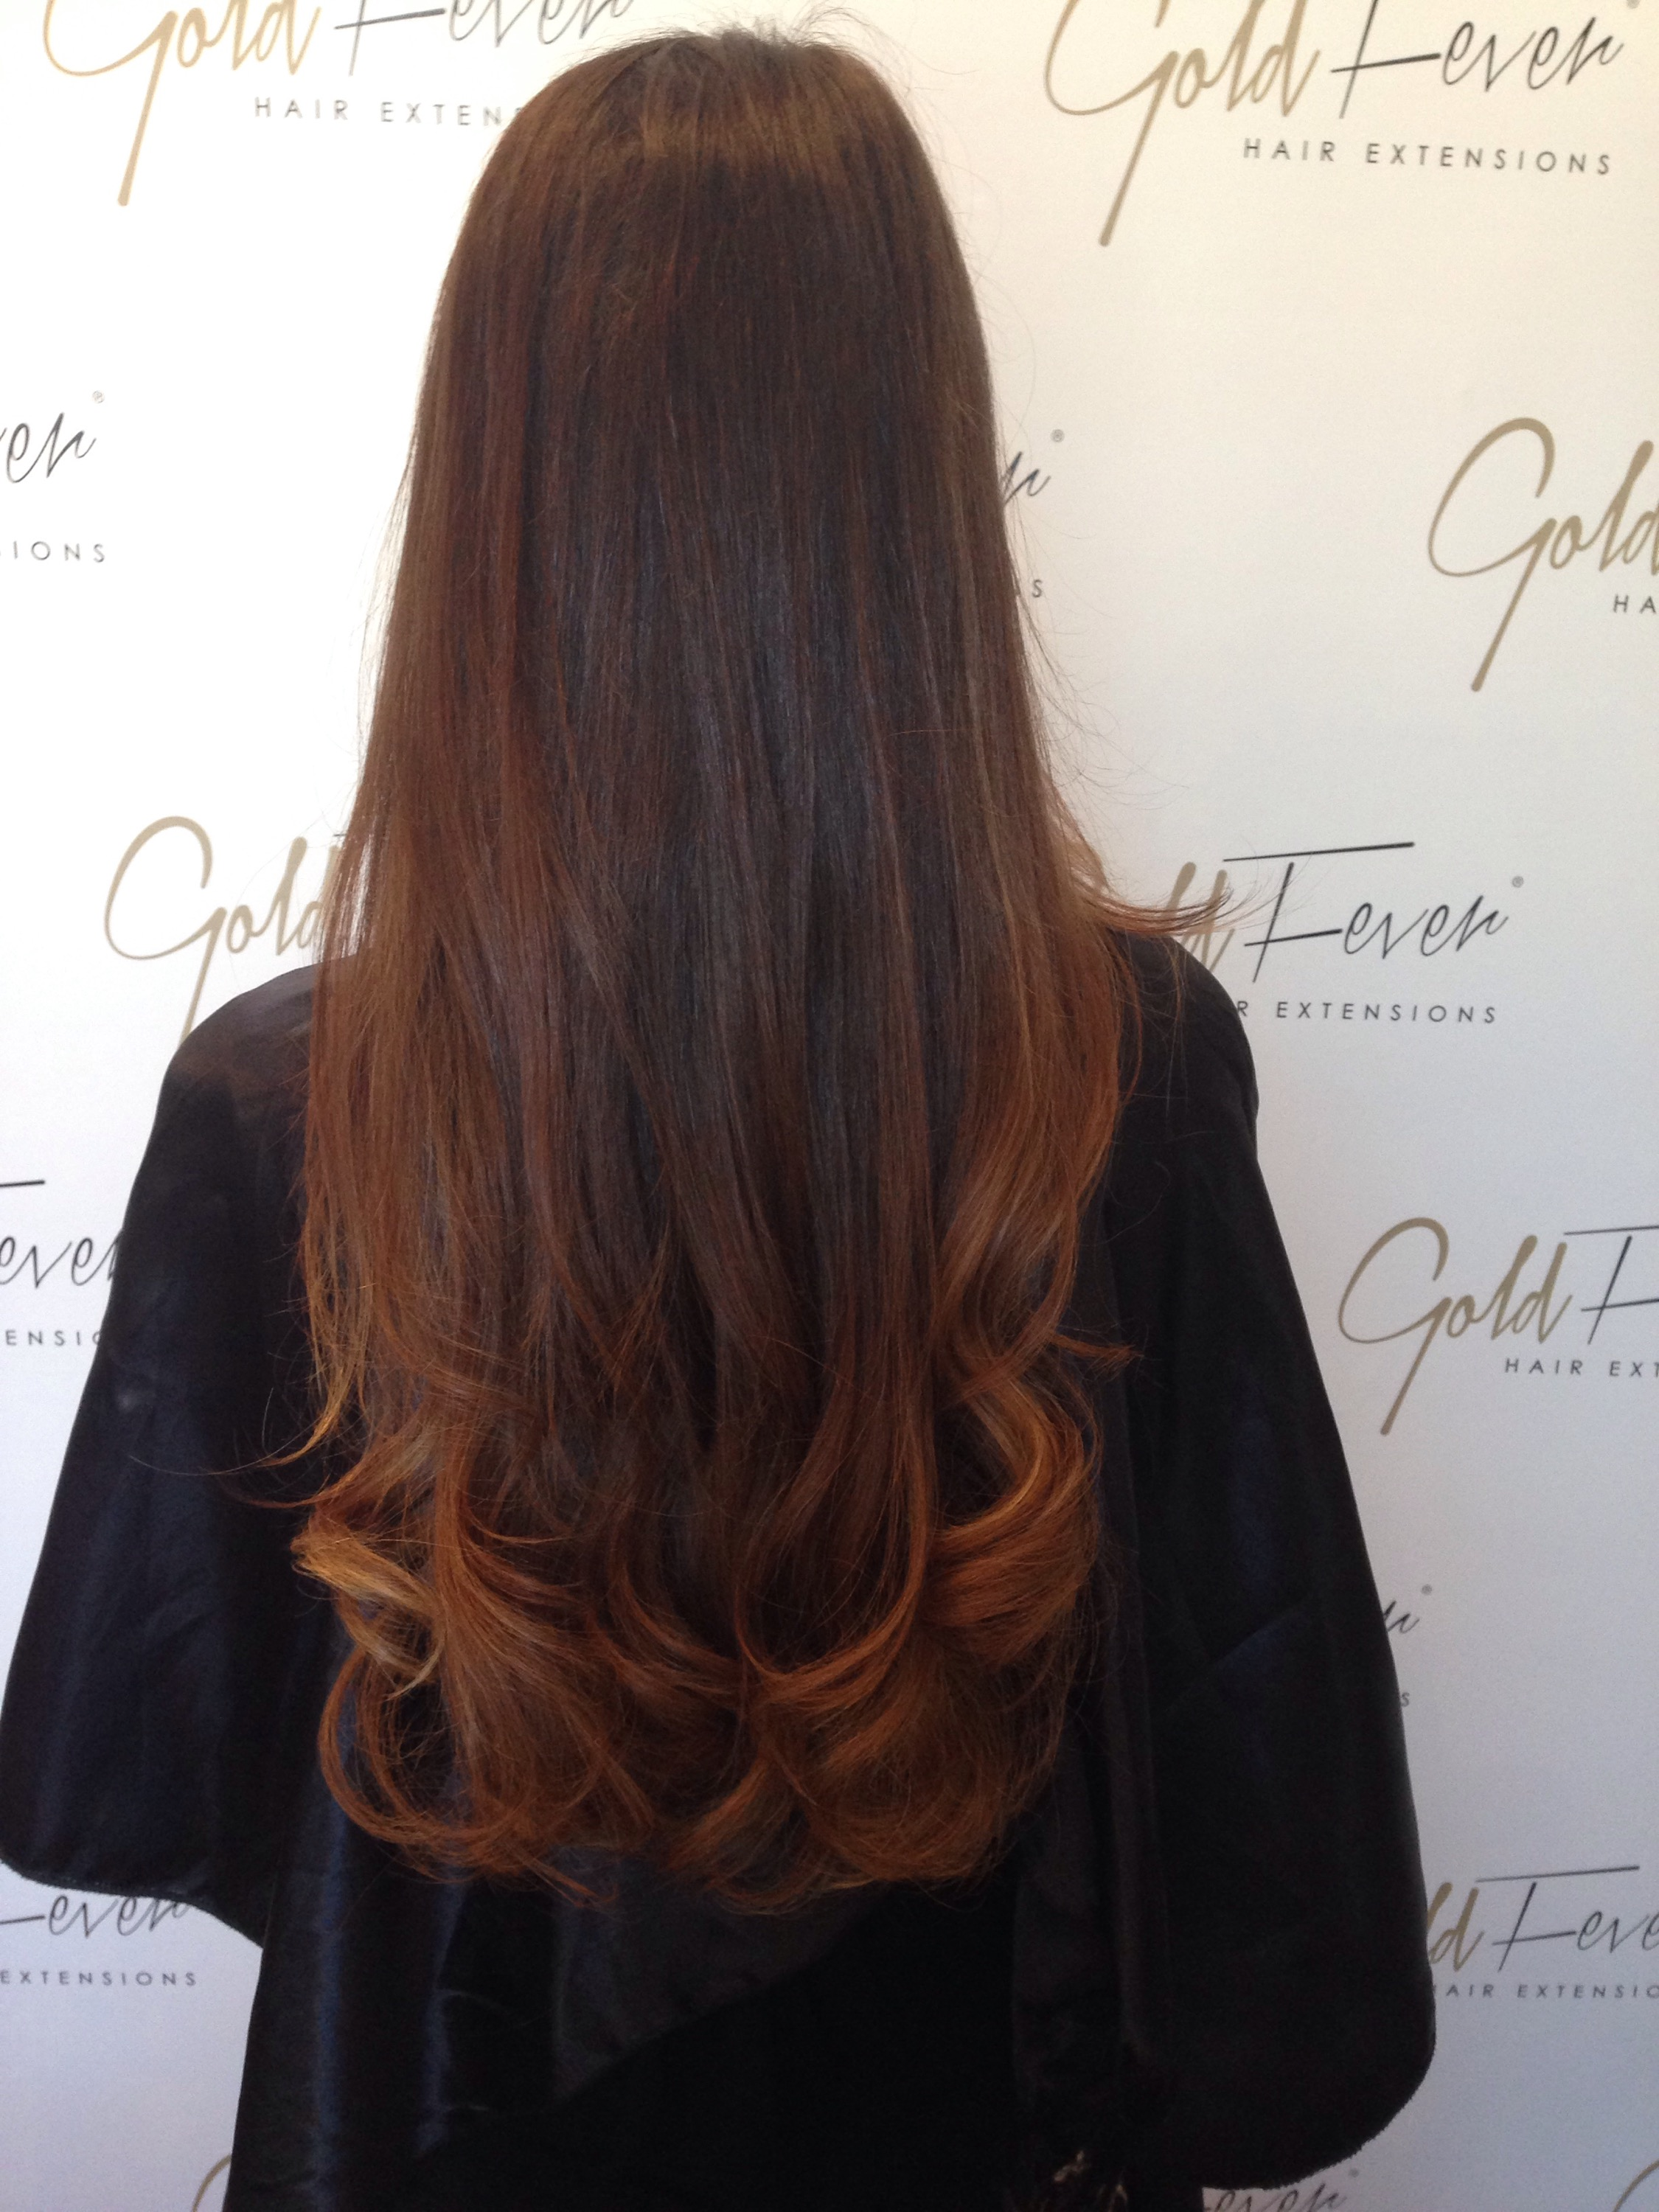 Gold Fever Hair Extension Review Tori Keane